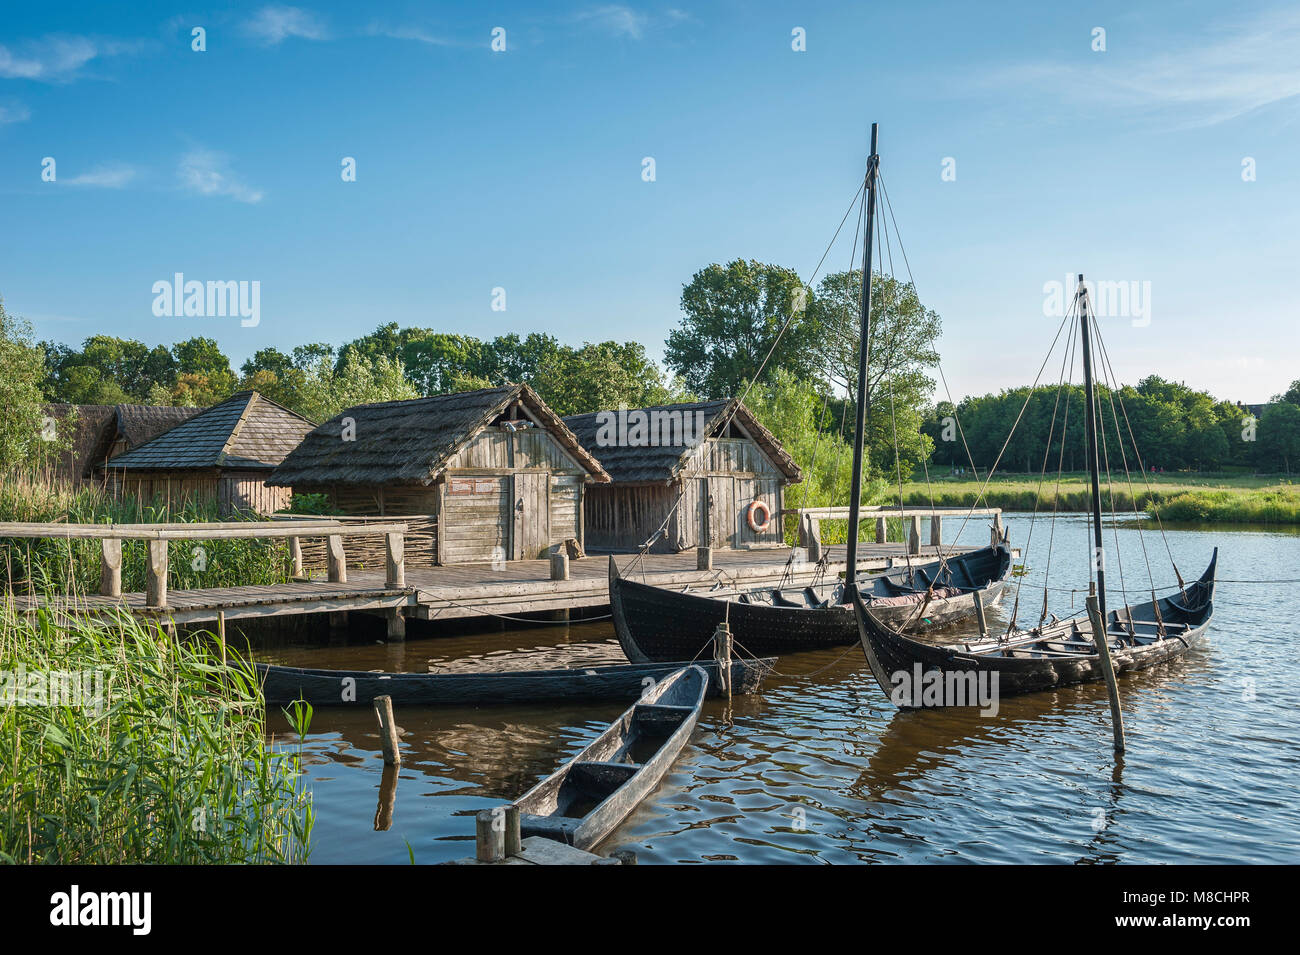 Wallmuseum, slavic village with a viking ship, slavic merchant-ship and dugout, Oldenburg in Holstein, Baltic Sea, - Stock Image